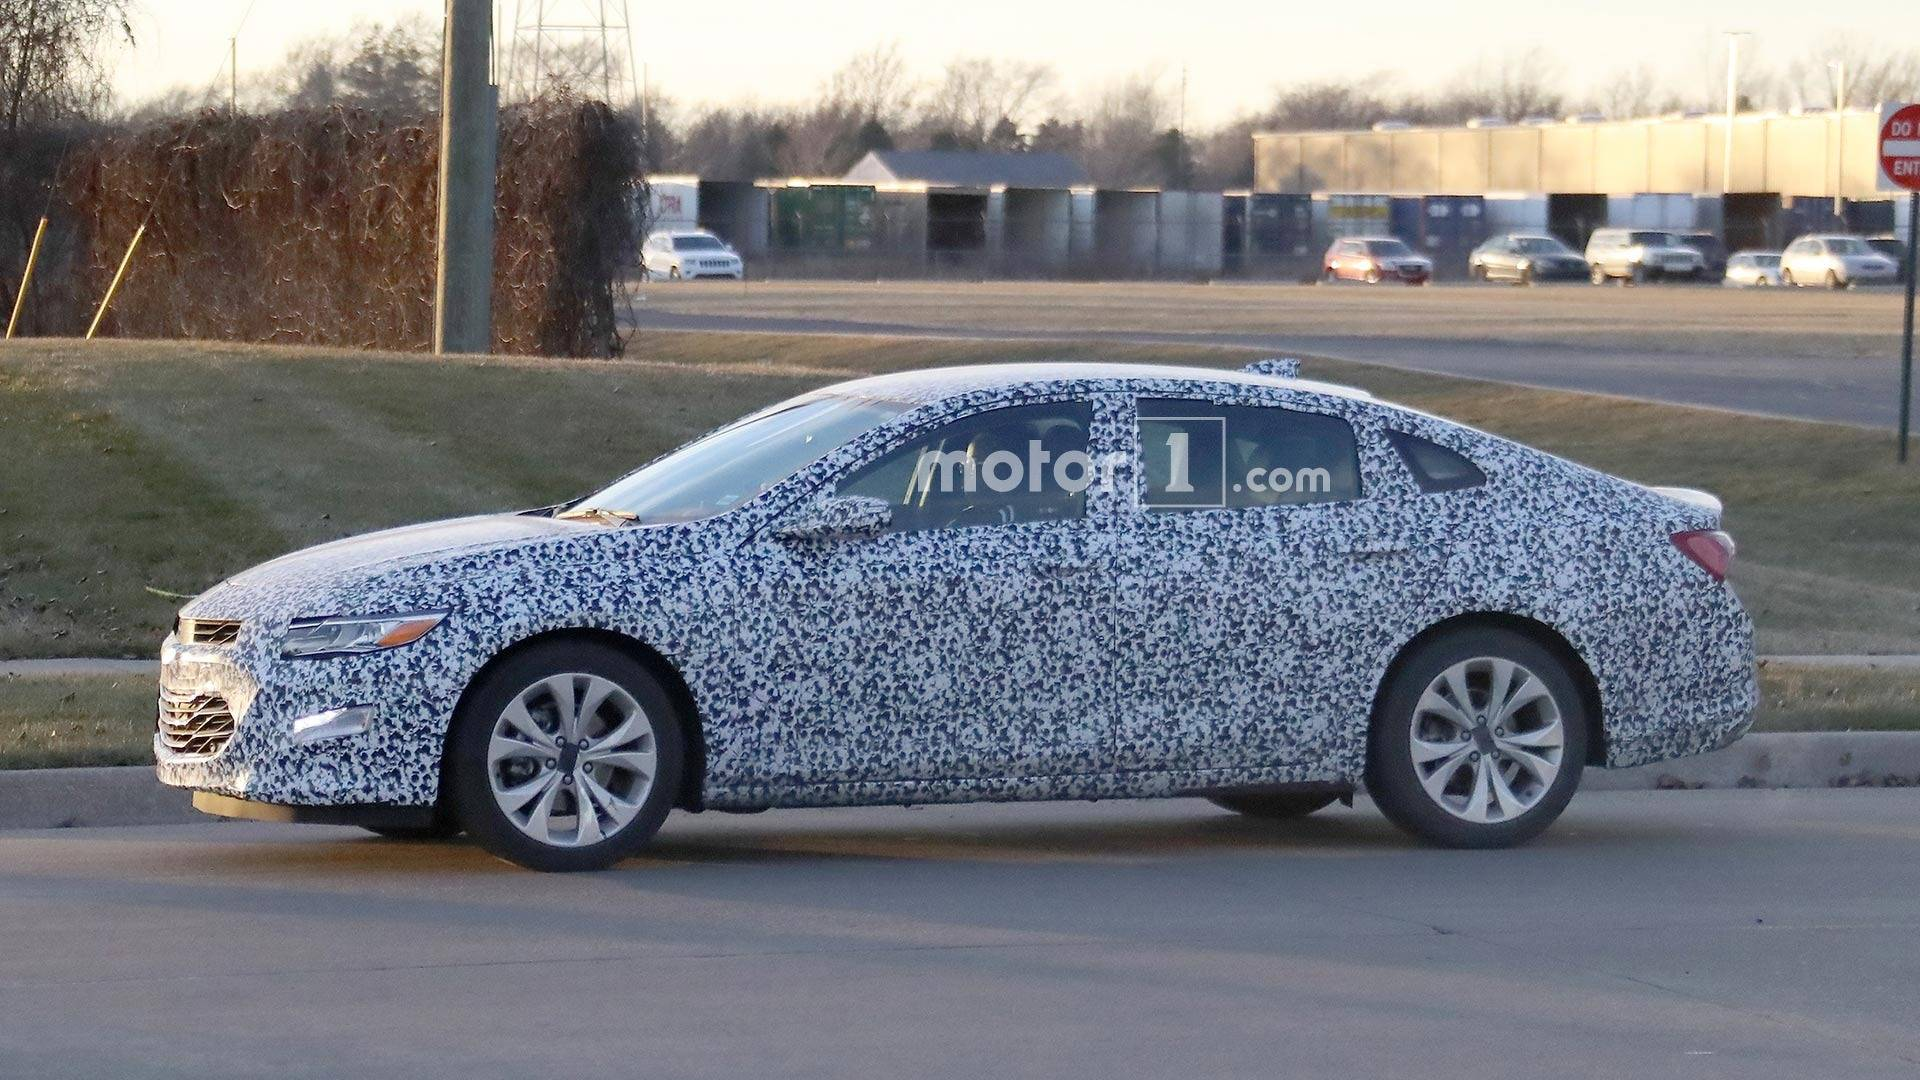 2019 Malibu >> 2019 Chevy Malibu Spied Testing With Less Camo